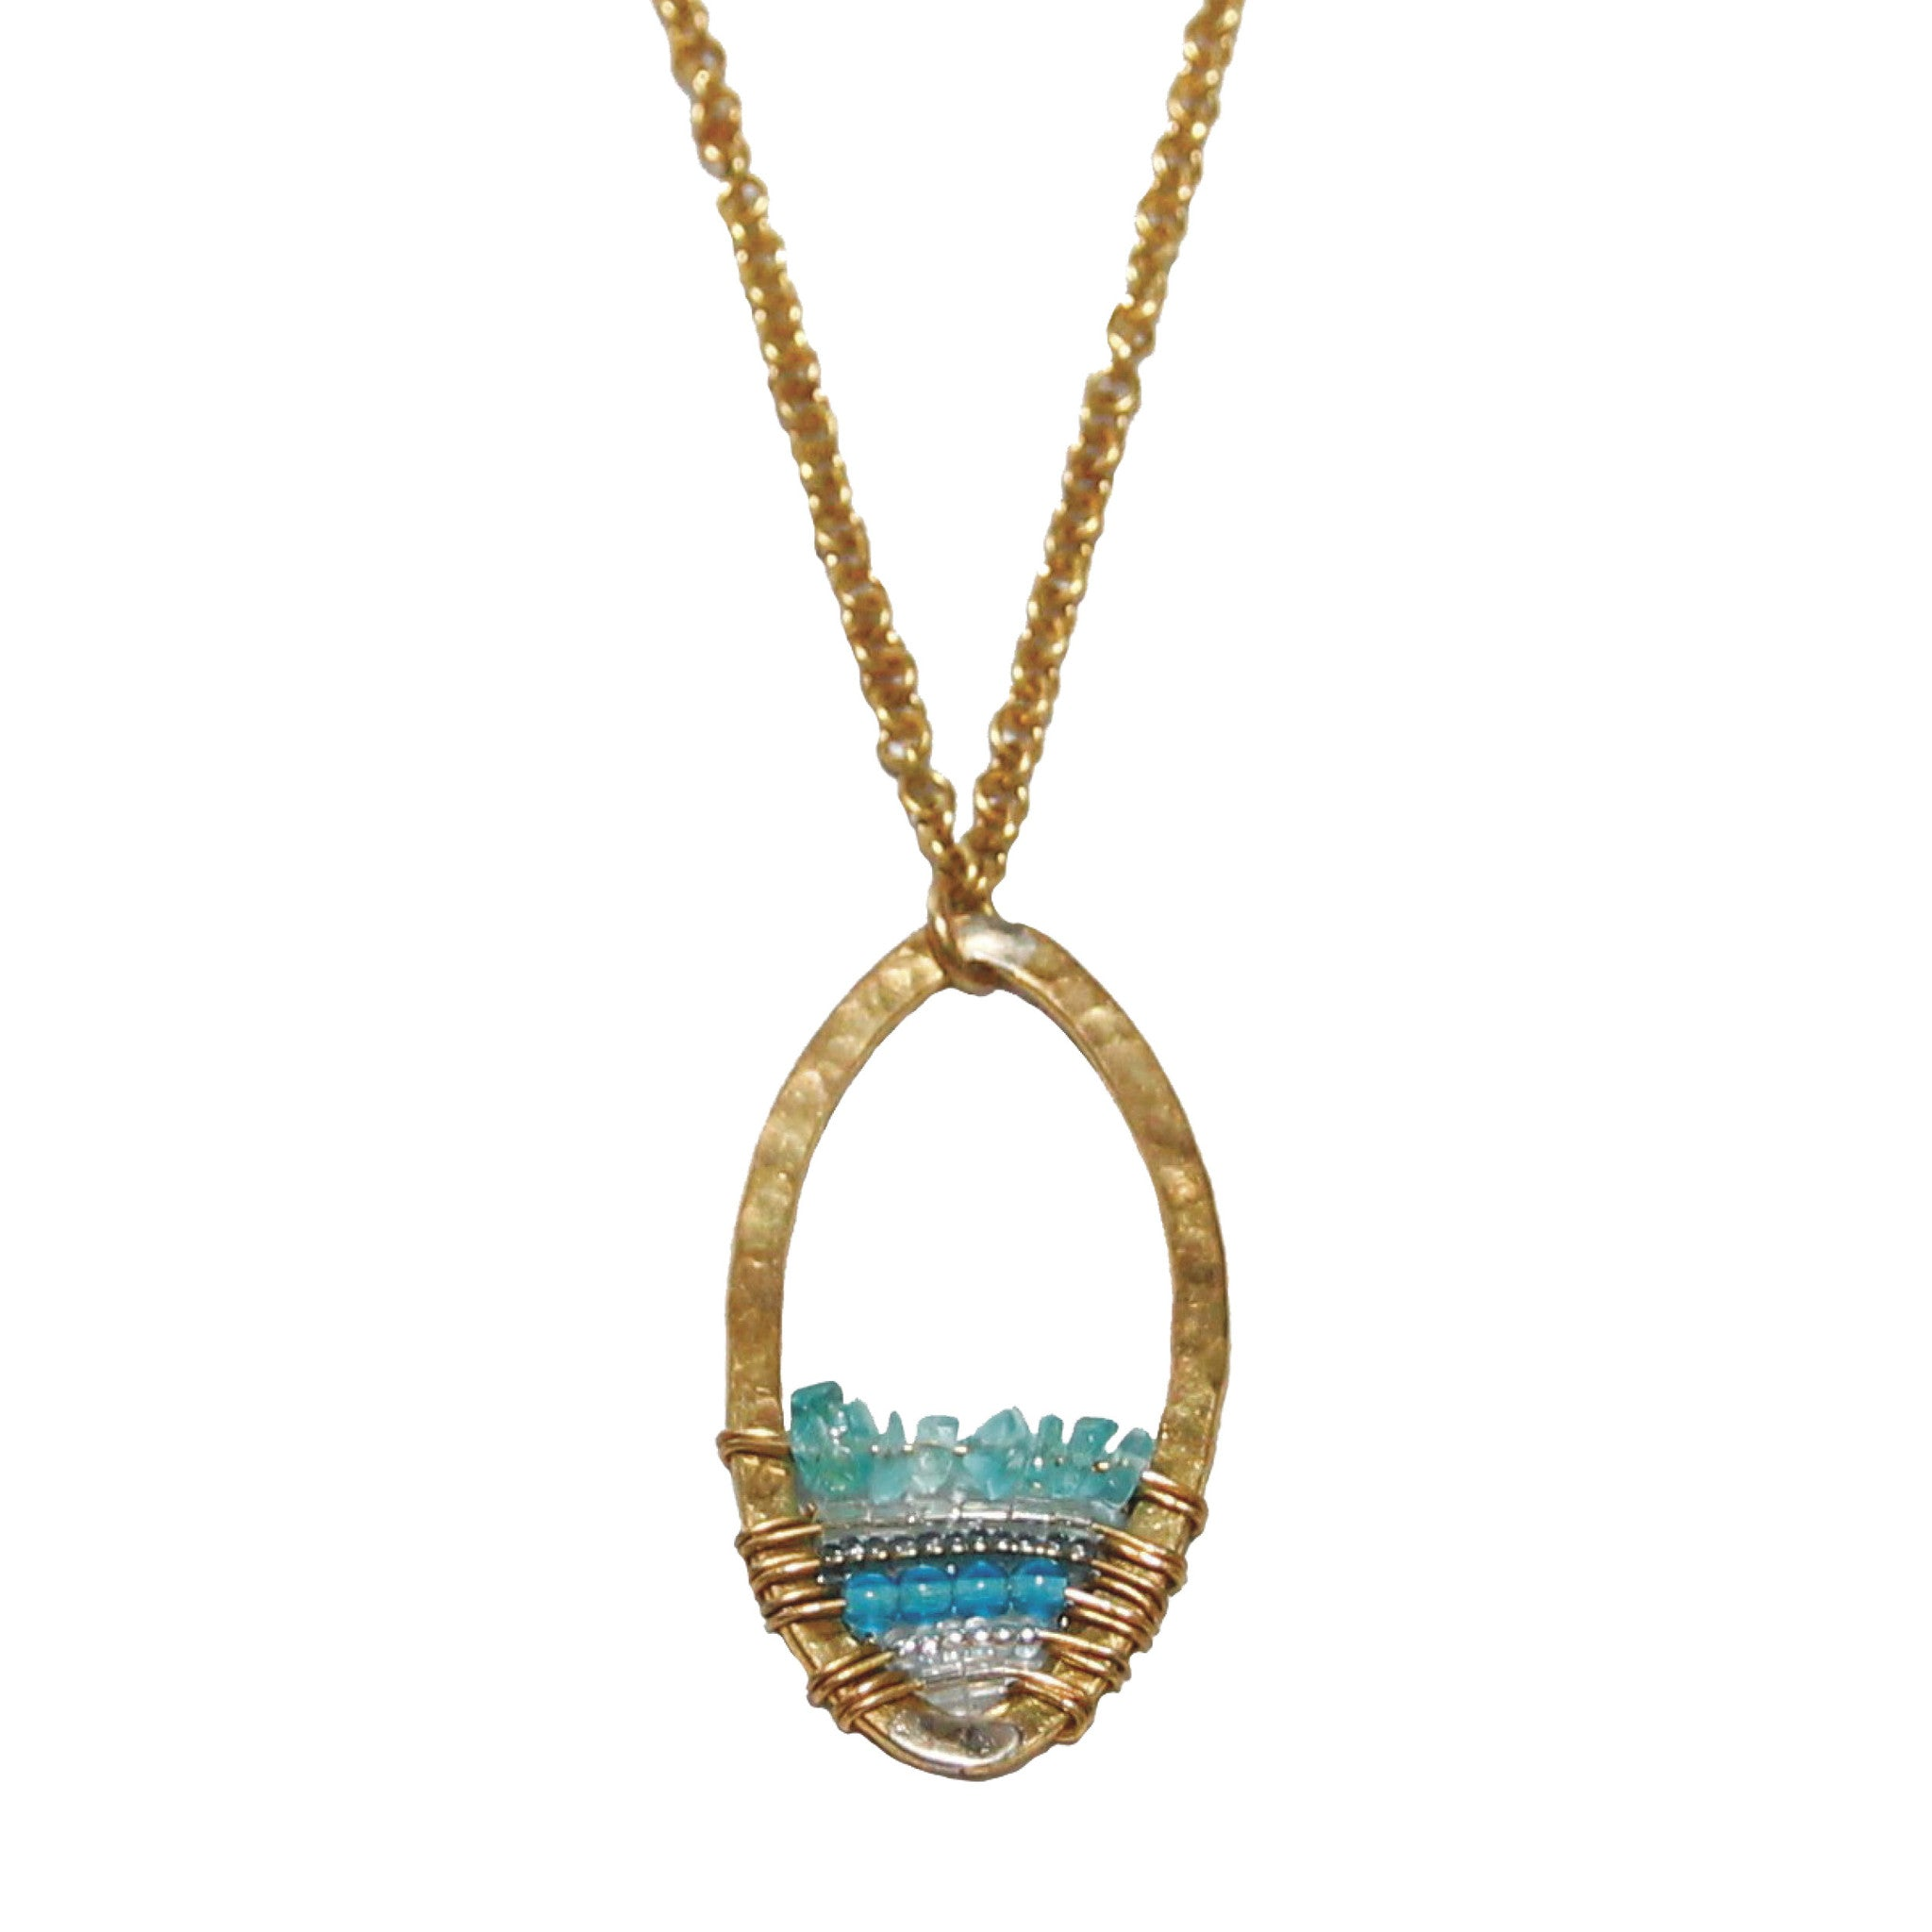 Maji Necklace - Sky Collection